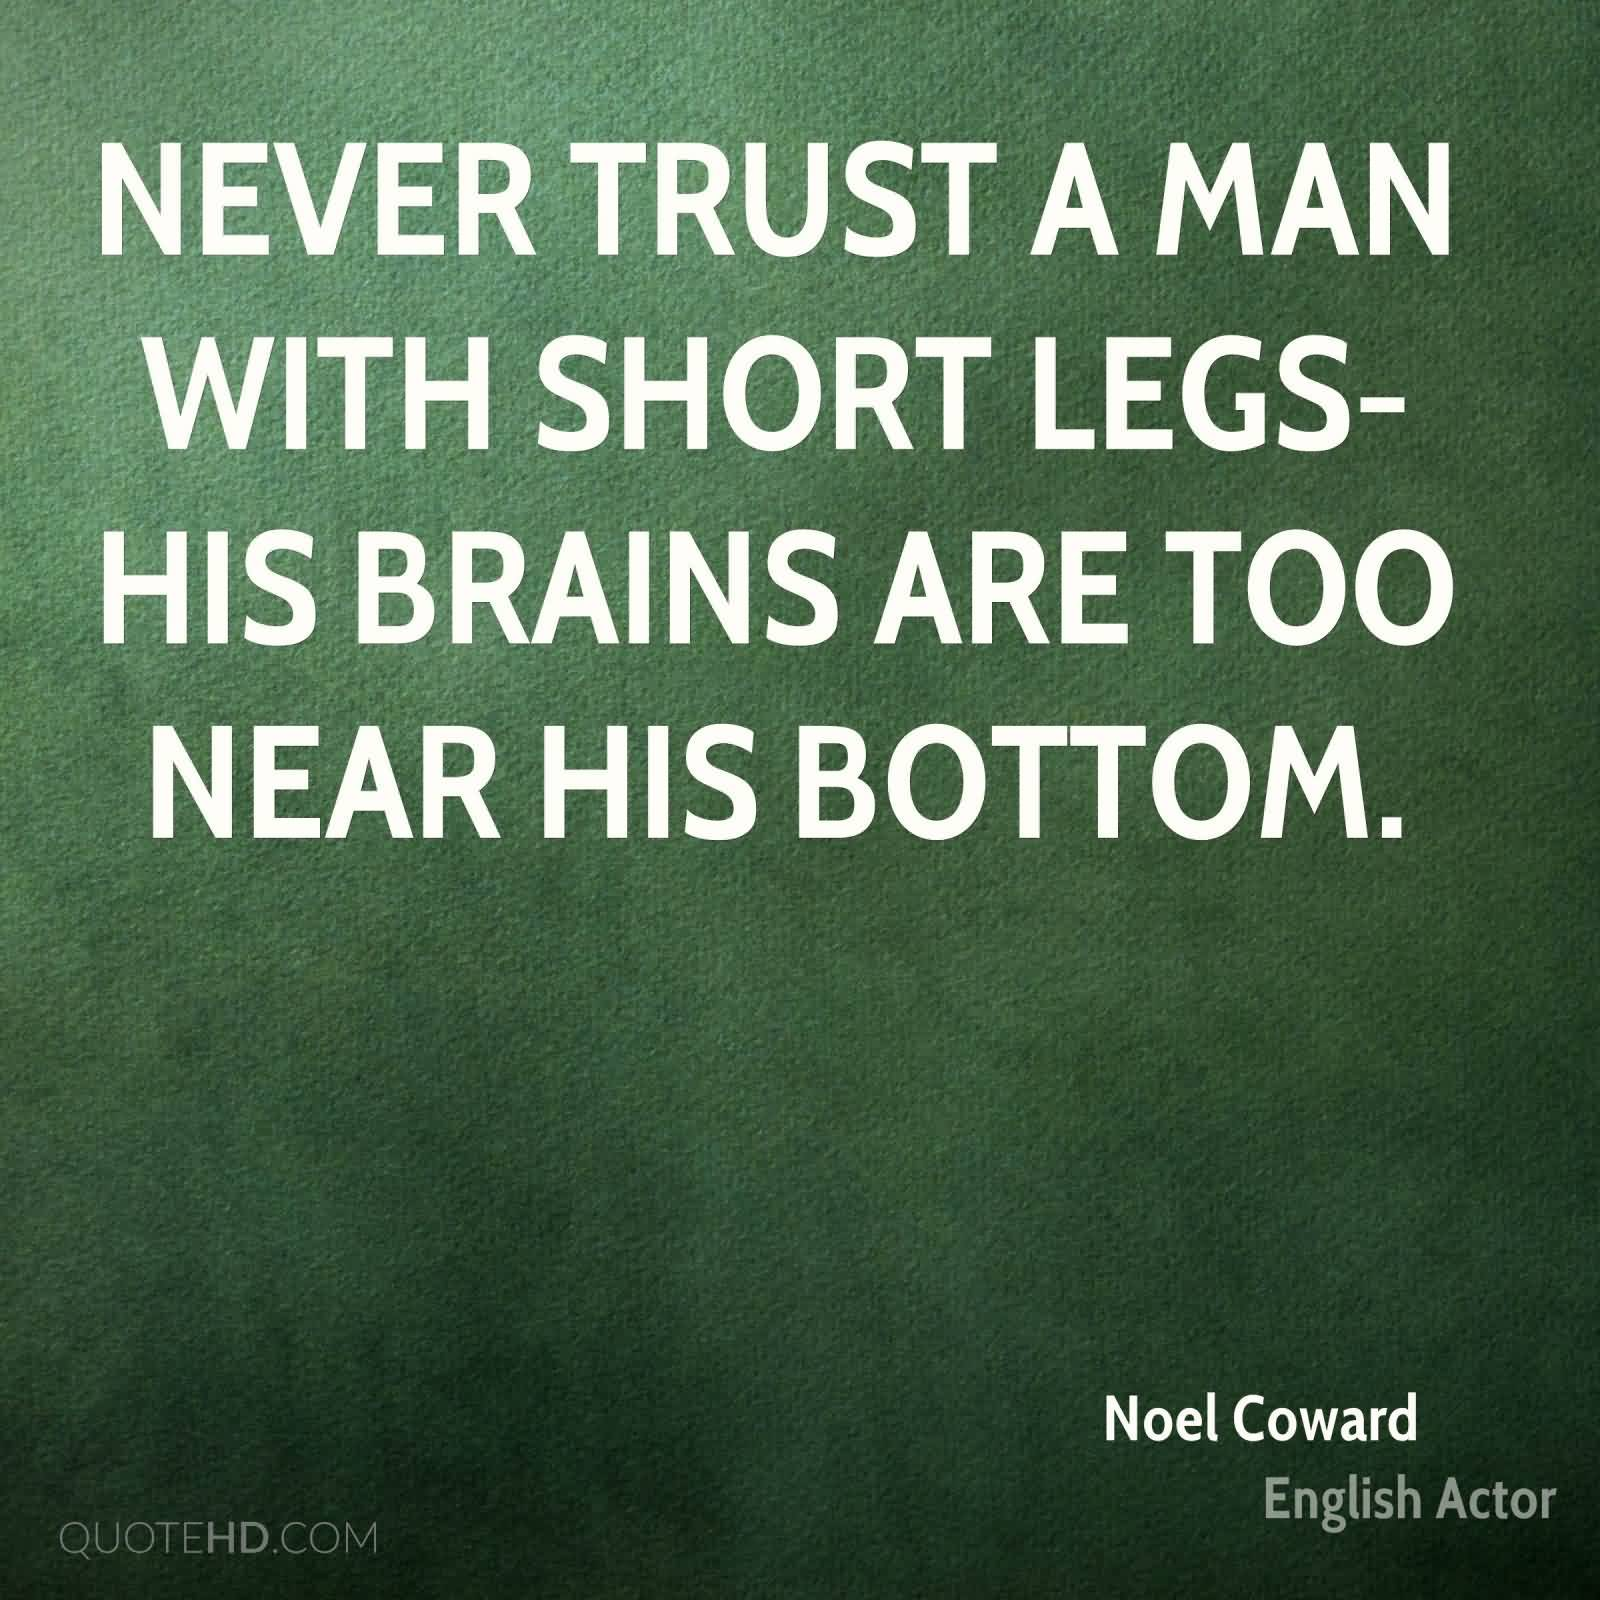 Quotes on betrayal and trust - 51 Famous Never Trust Quotes And Quotations Collection